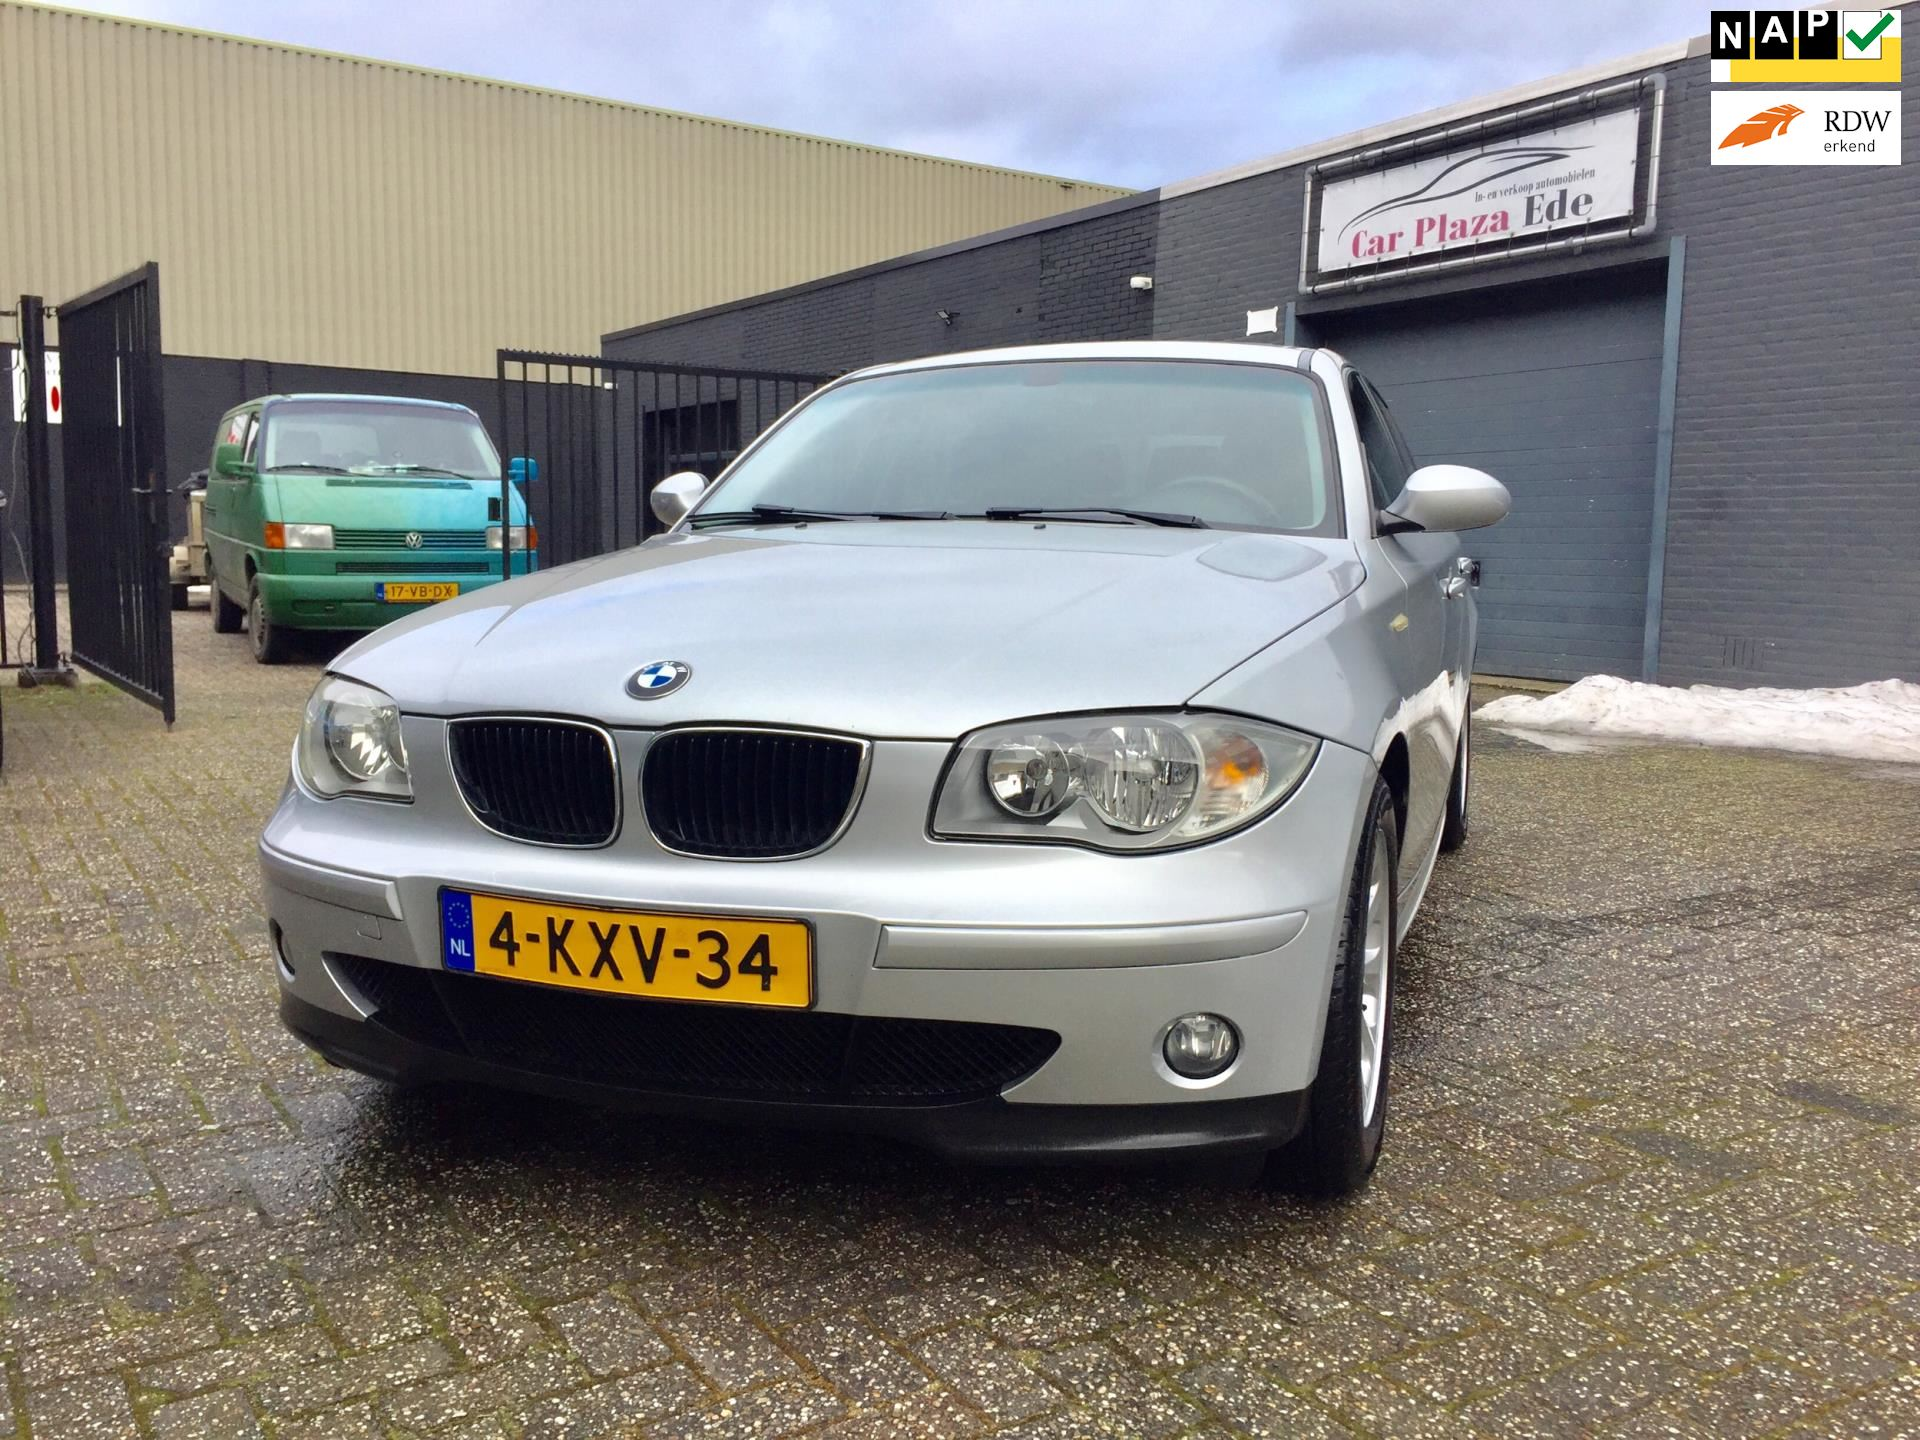 BMW 1-serie occasion - Carplaza Ede